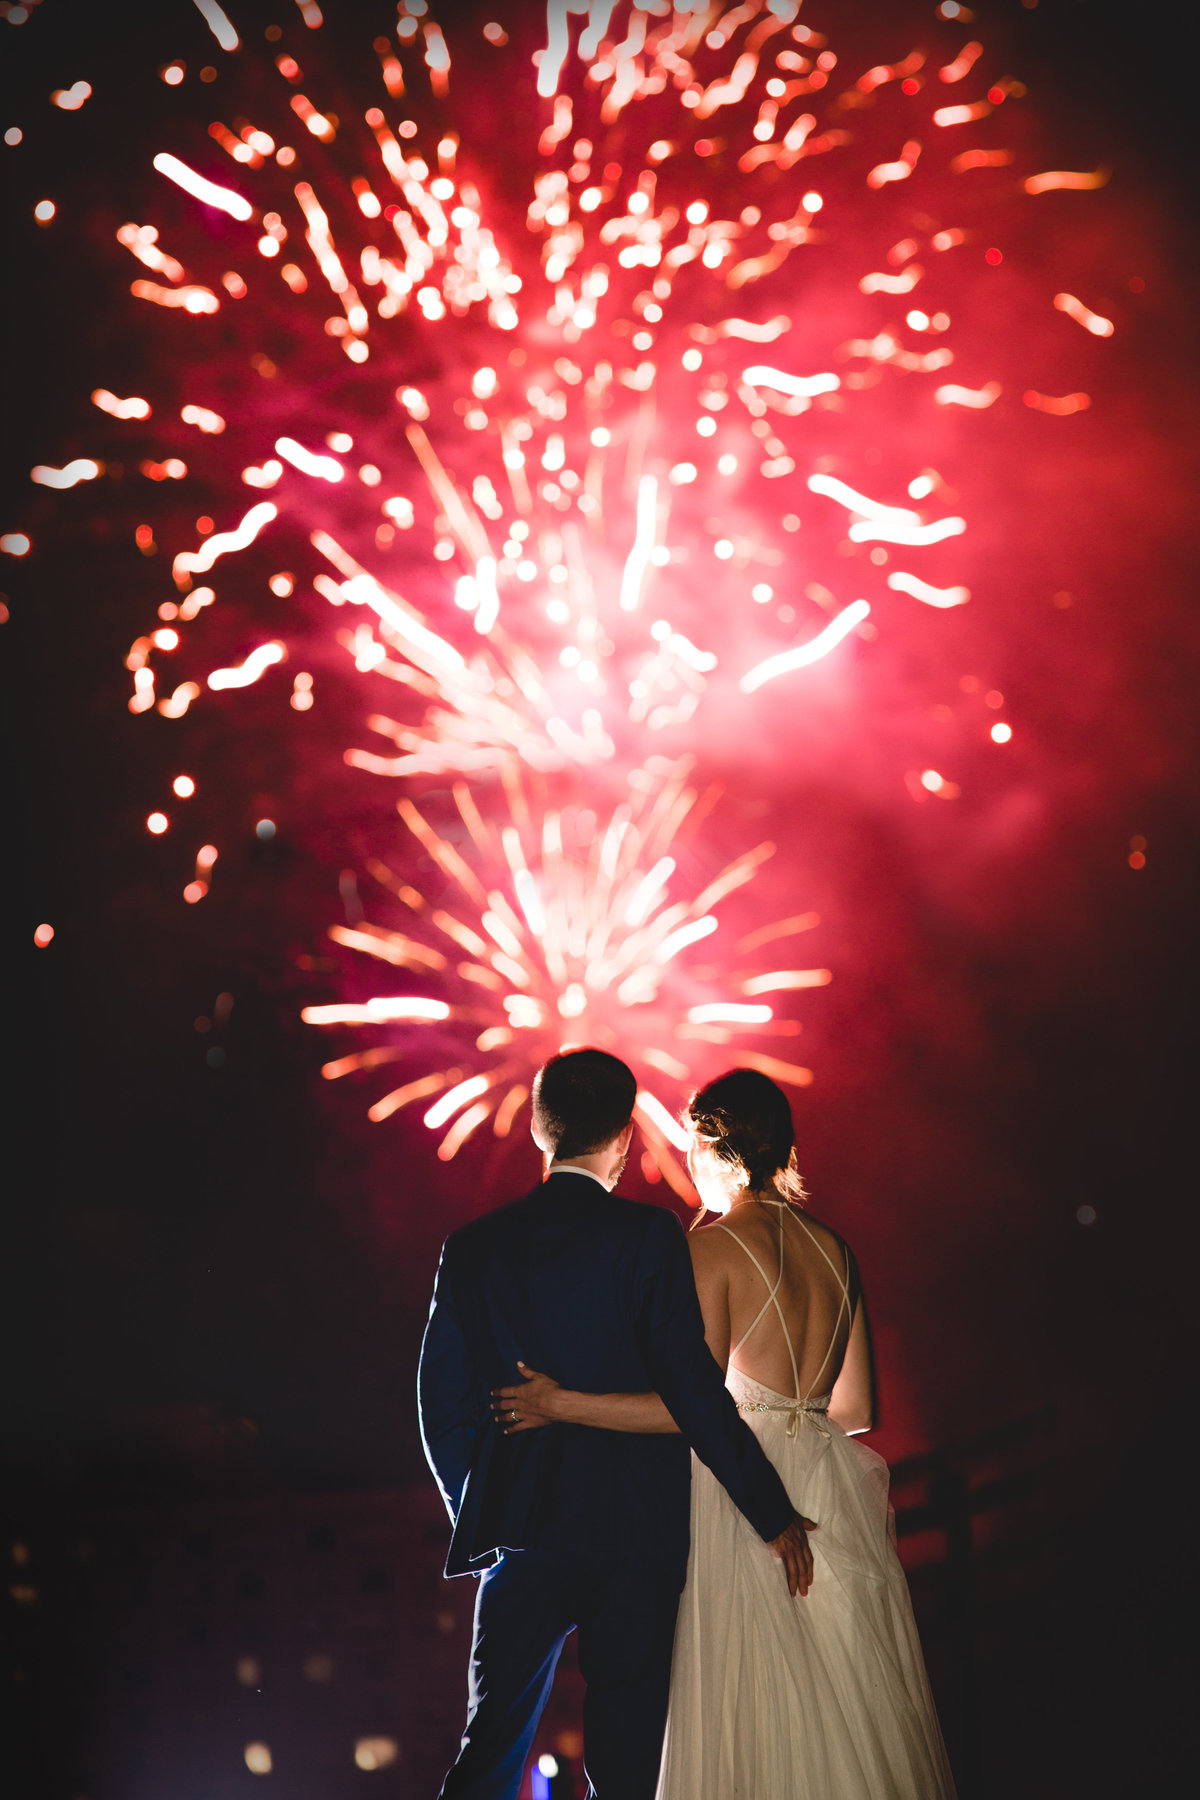 A Bride and groom watching the bright red fireworks from the mudhens at the end of the wedding reception